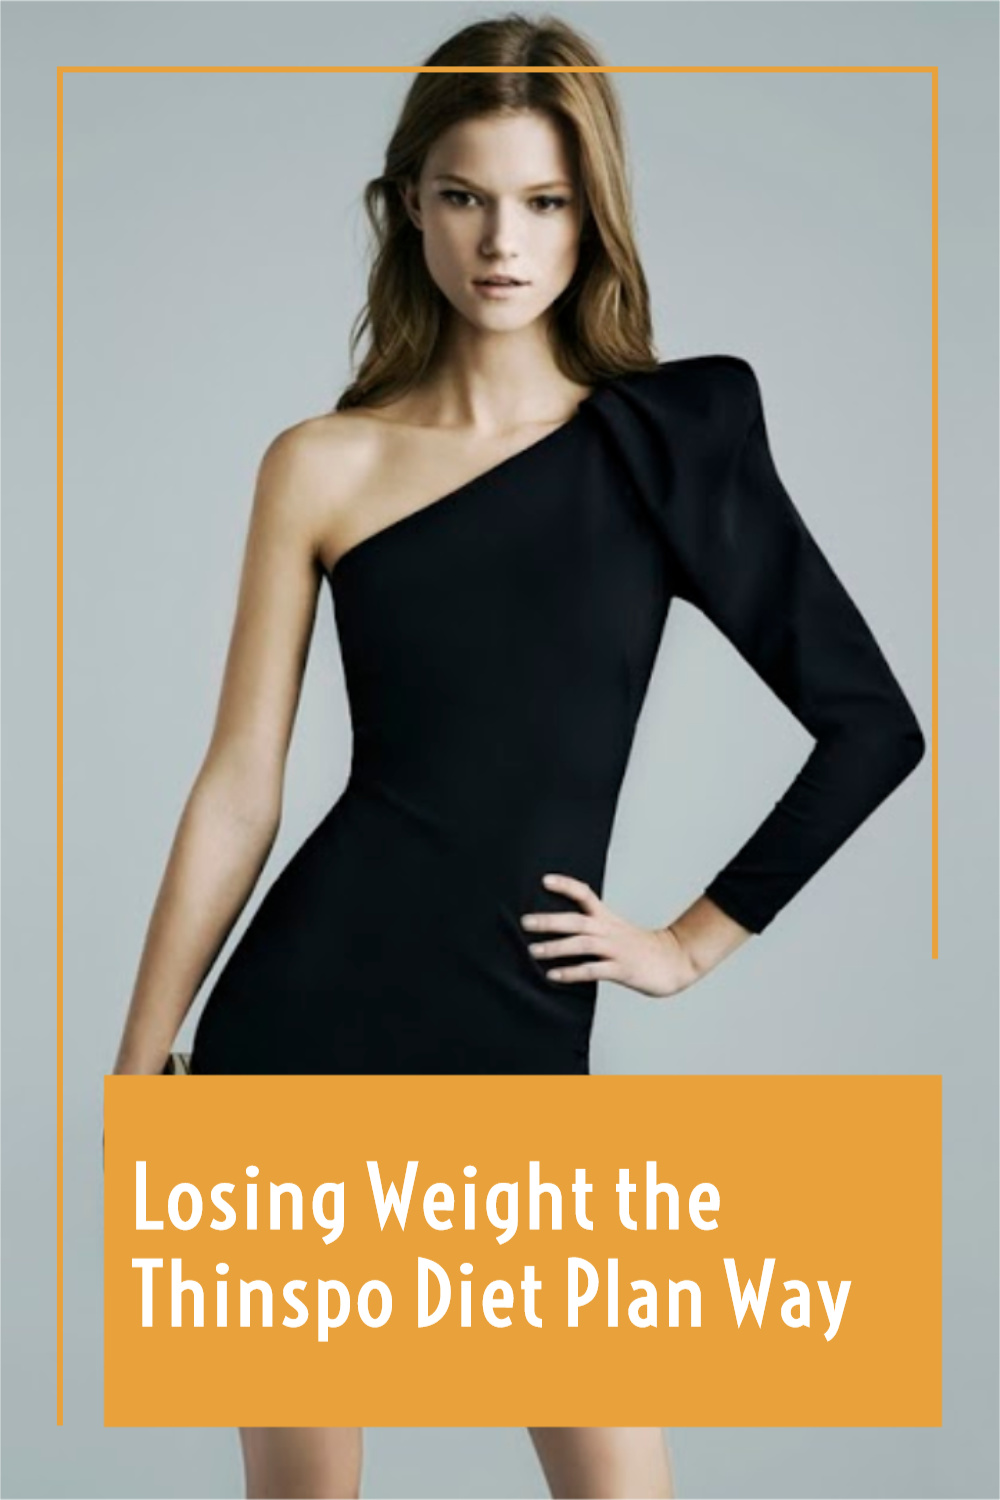 Losing Weight the Thinspo Diet Plan Way